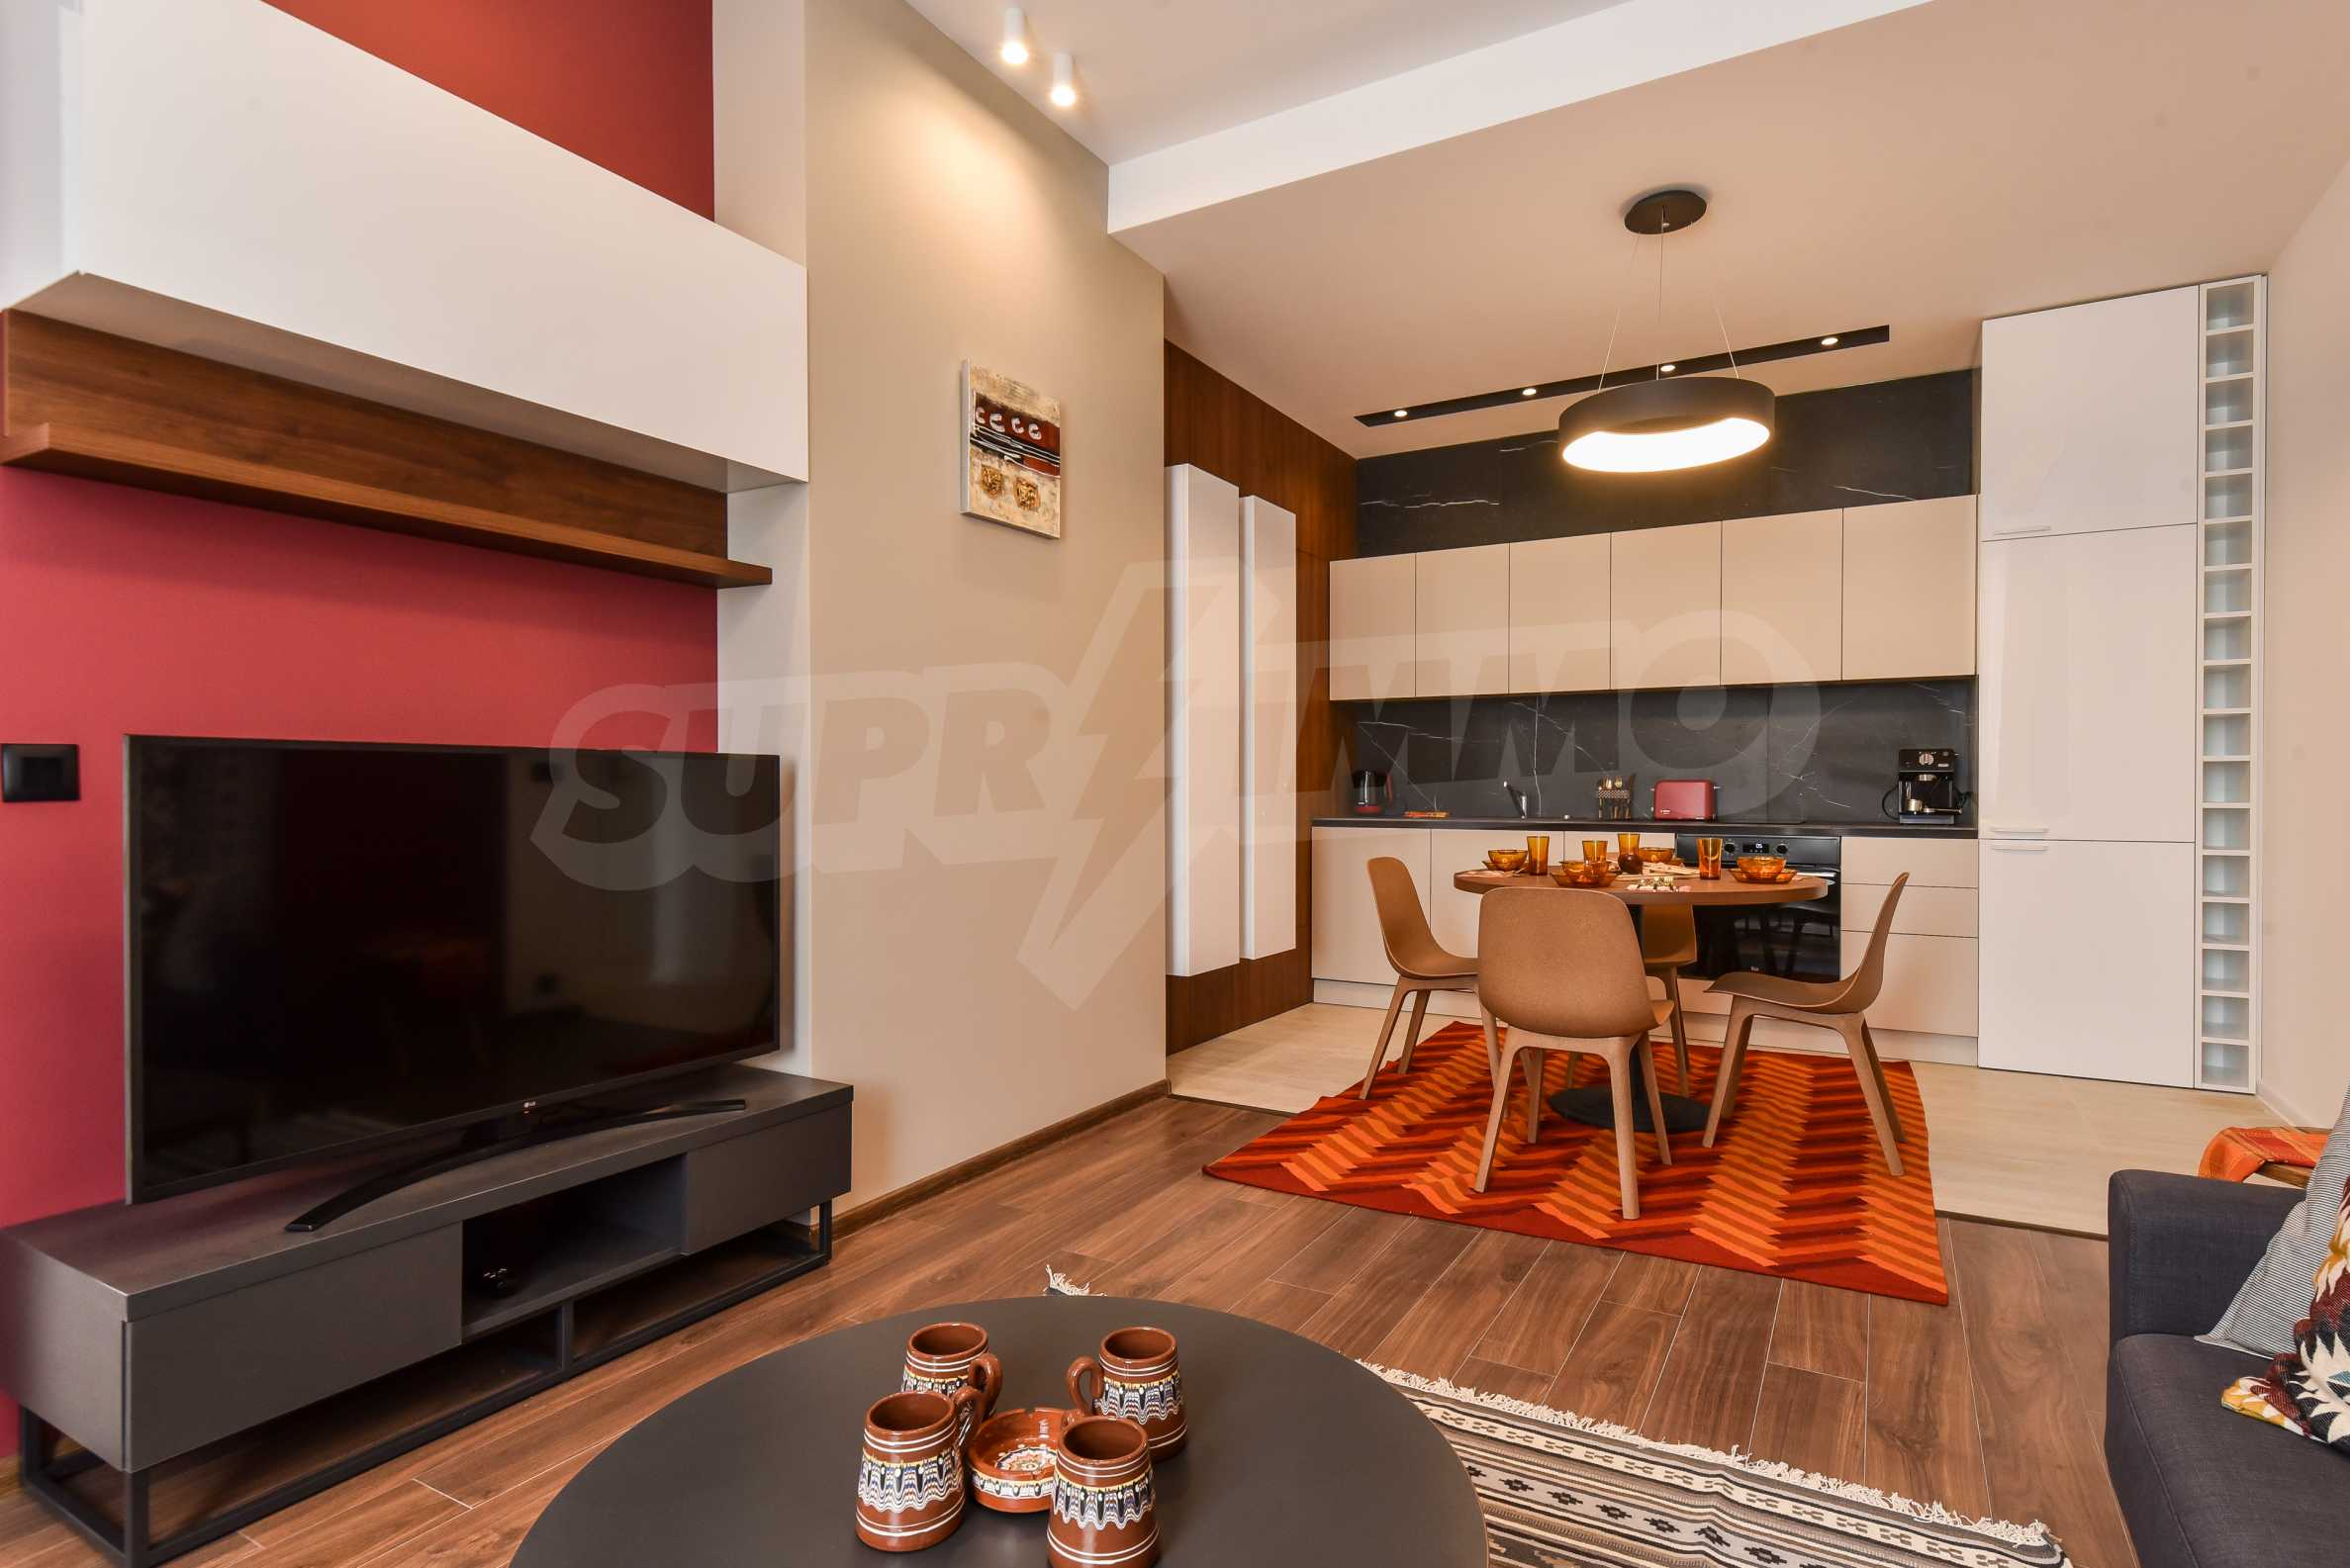 Designer two bedroom apartment in top center with working business 3